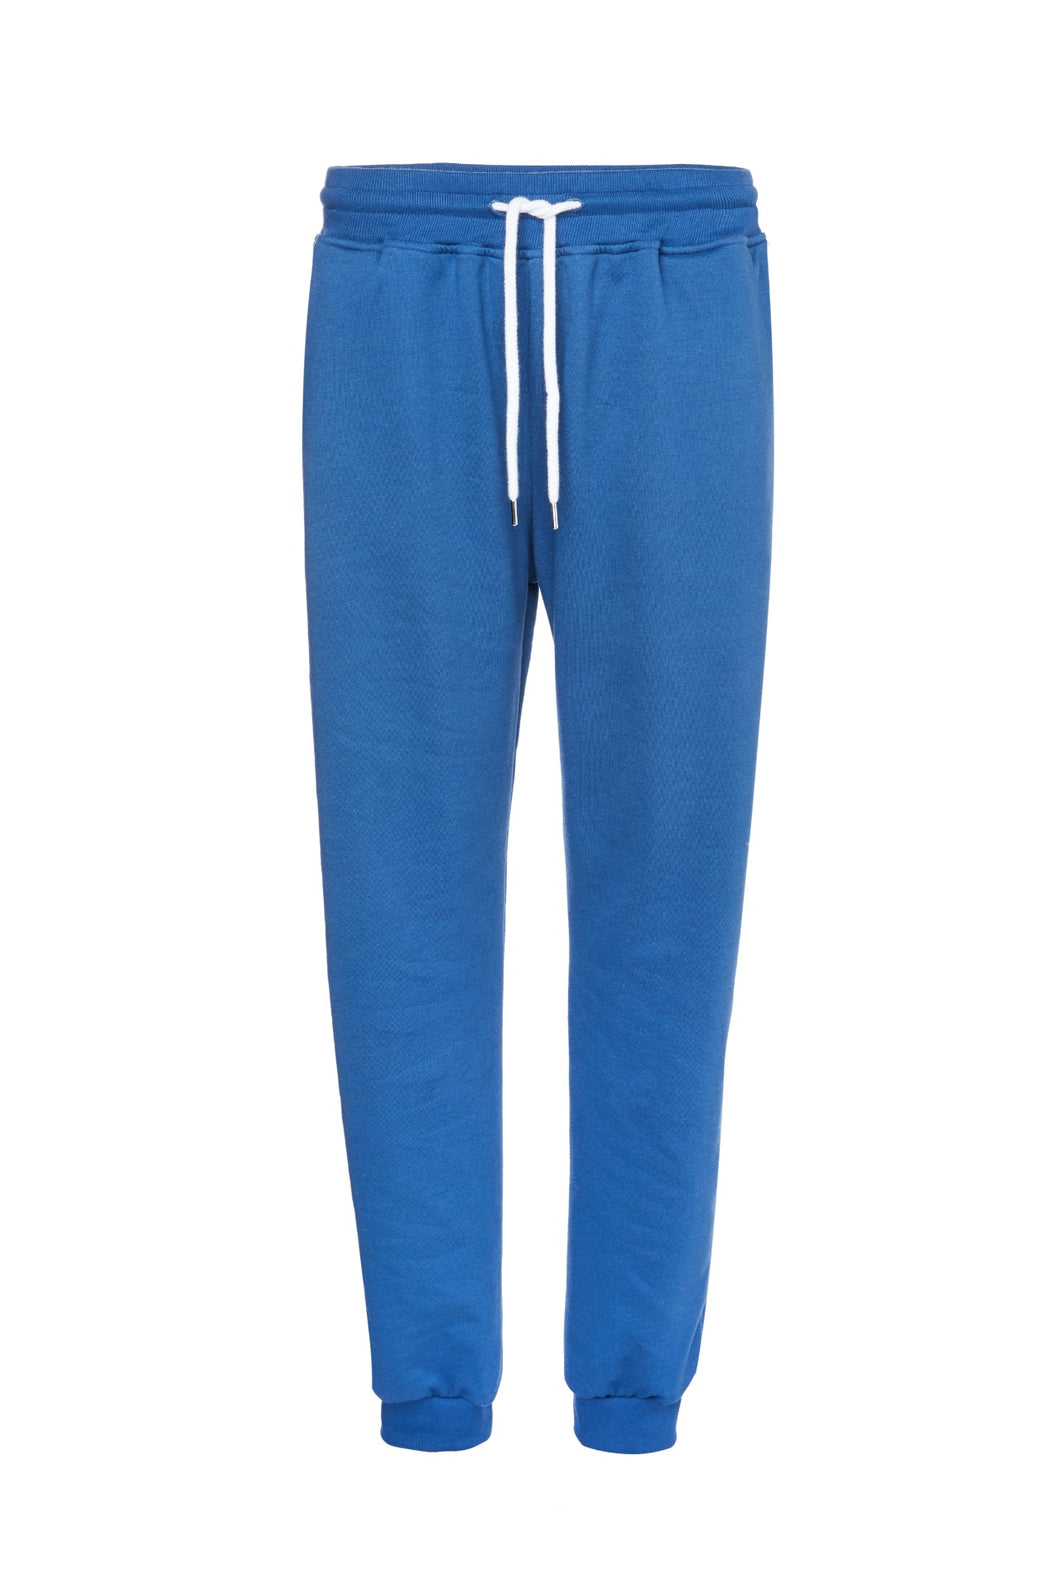 Navy Blue Sweatpants